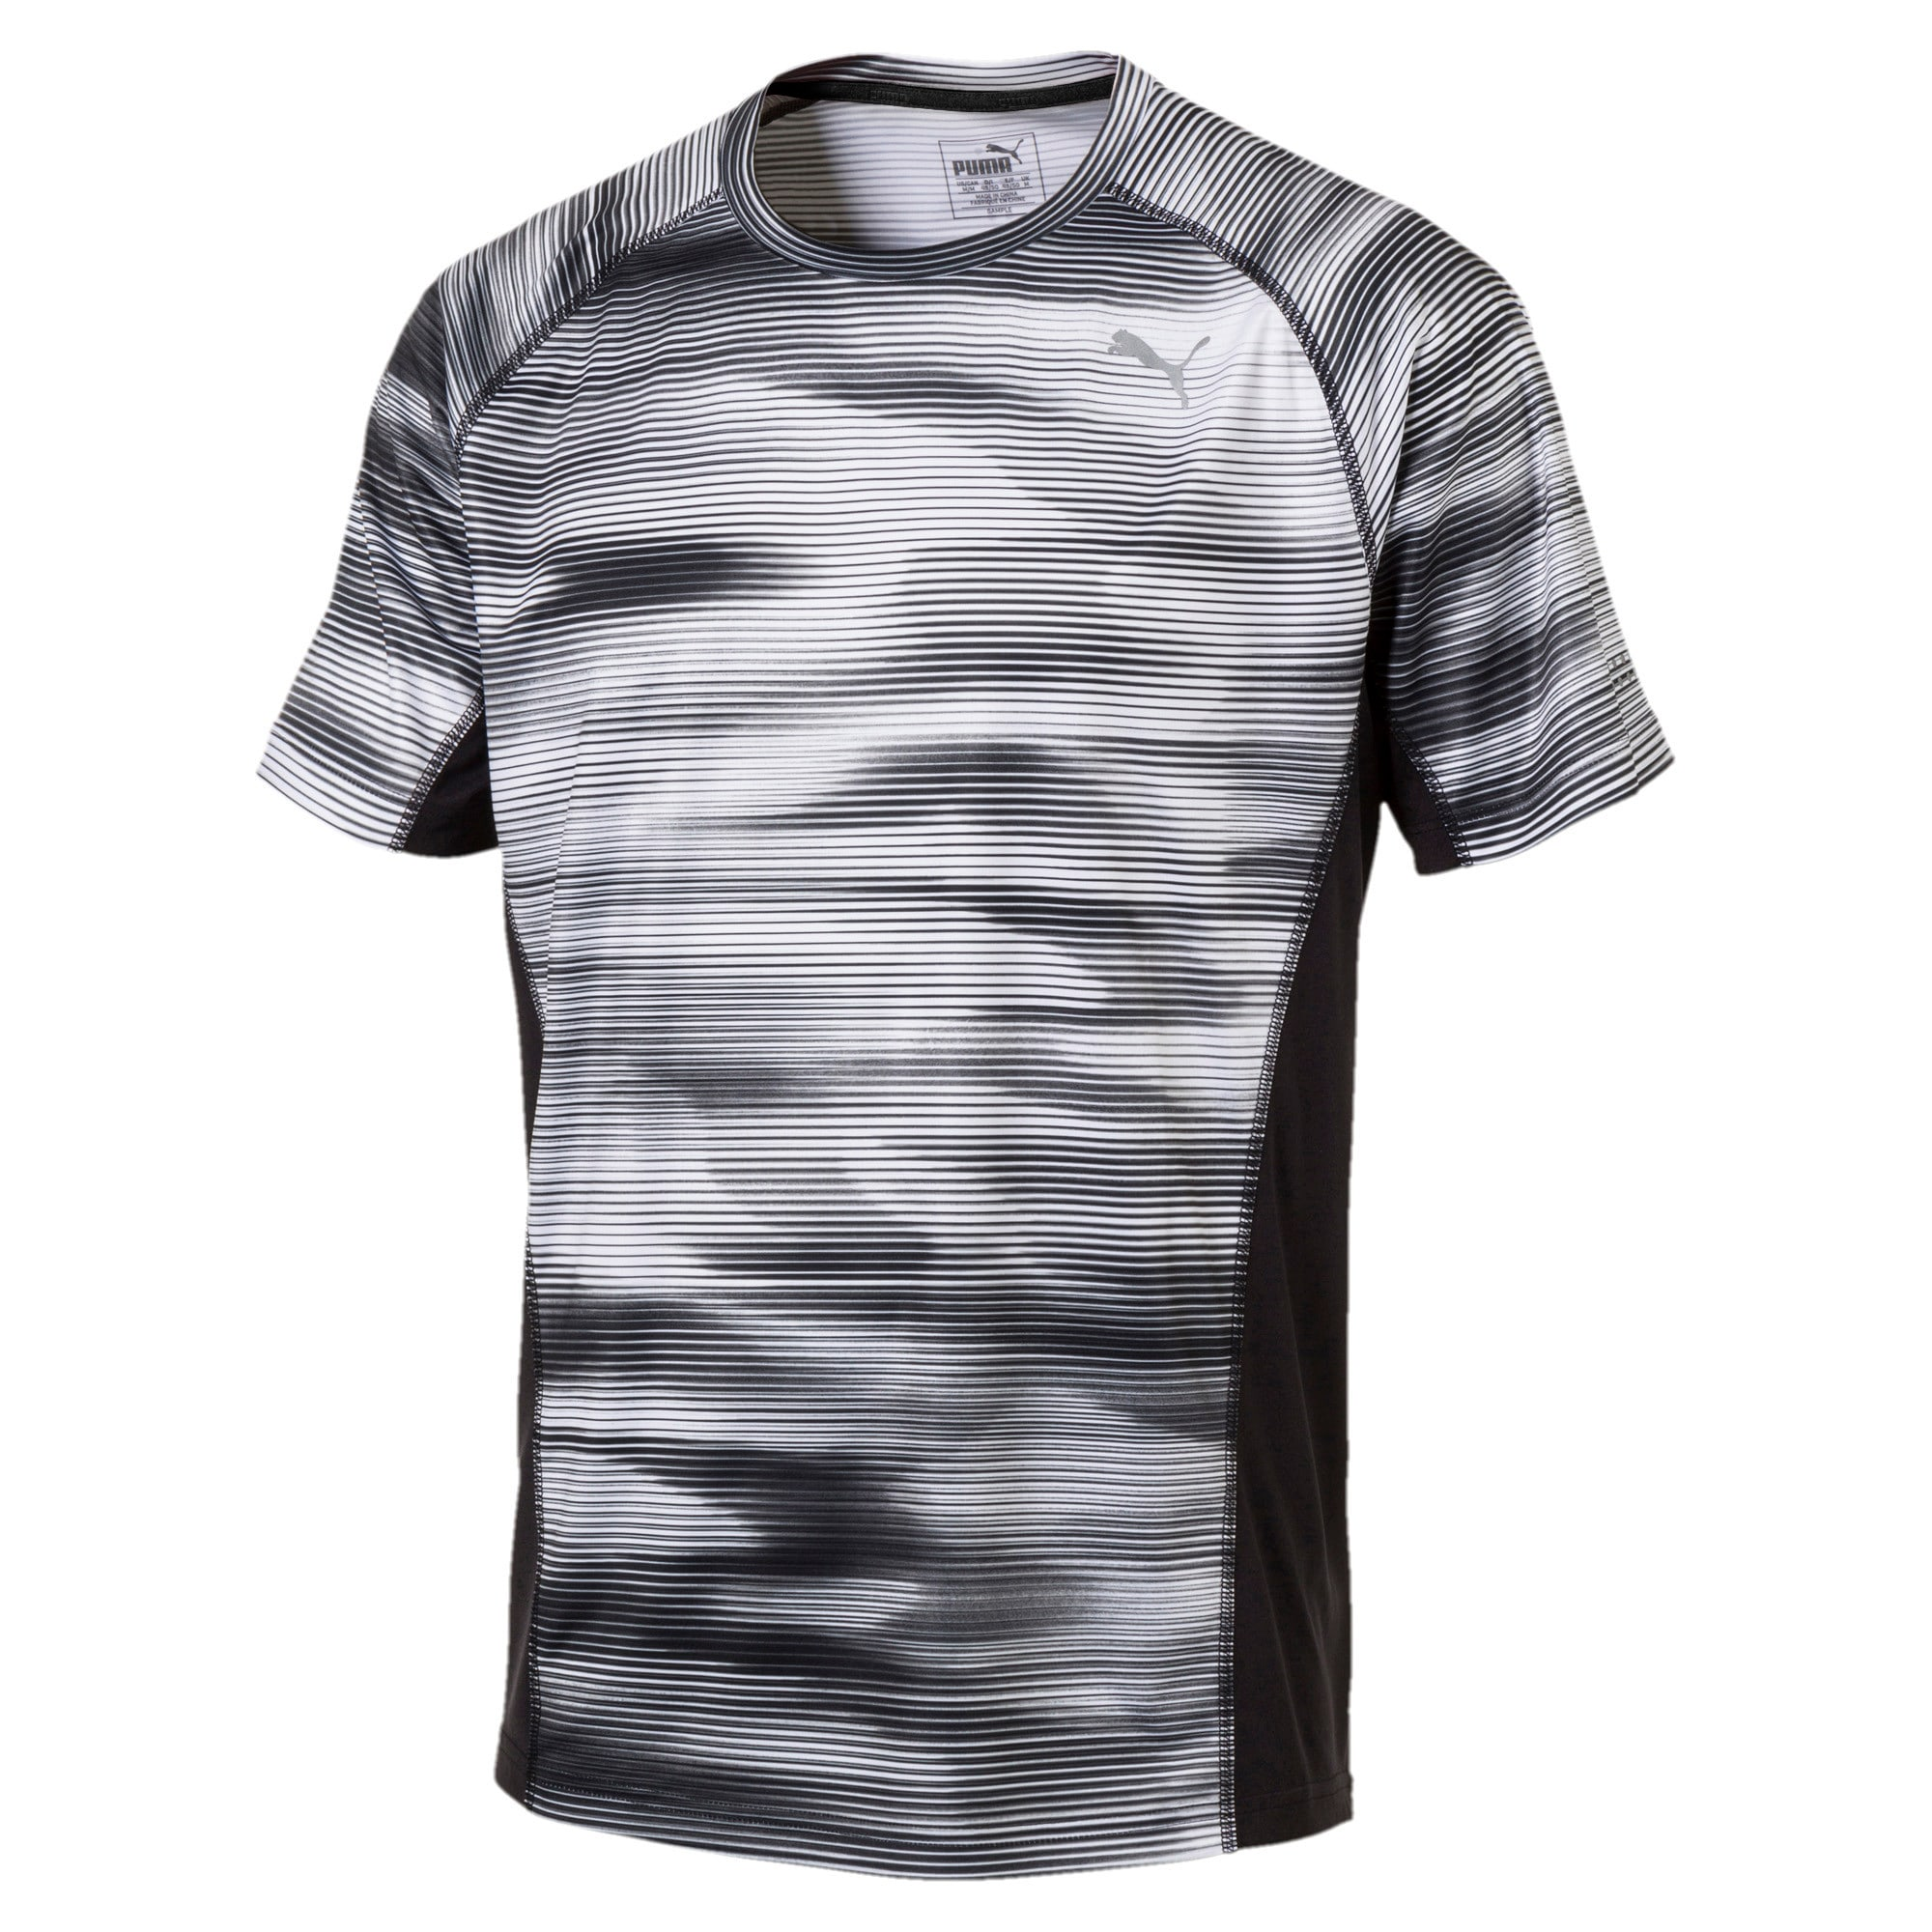 Thumbnail 1 of Running Men's Graphic T-Shirt, Puma Black Heather, medium-IND